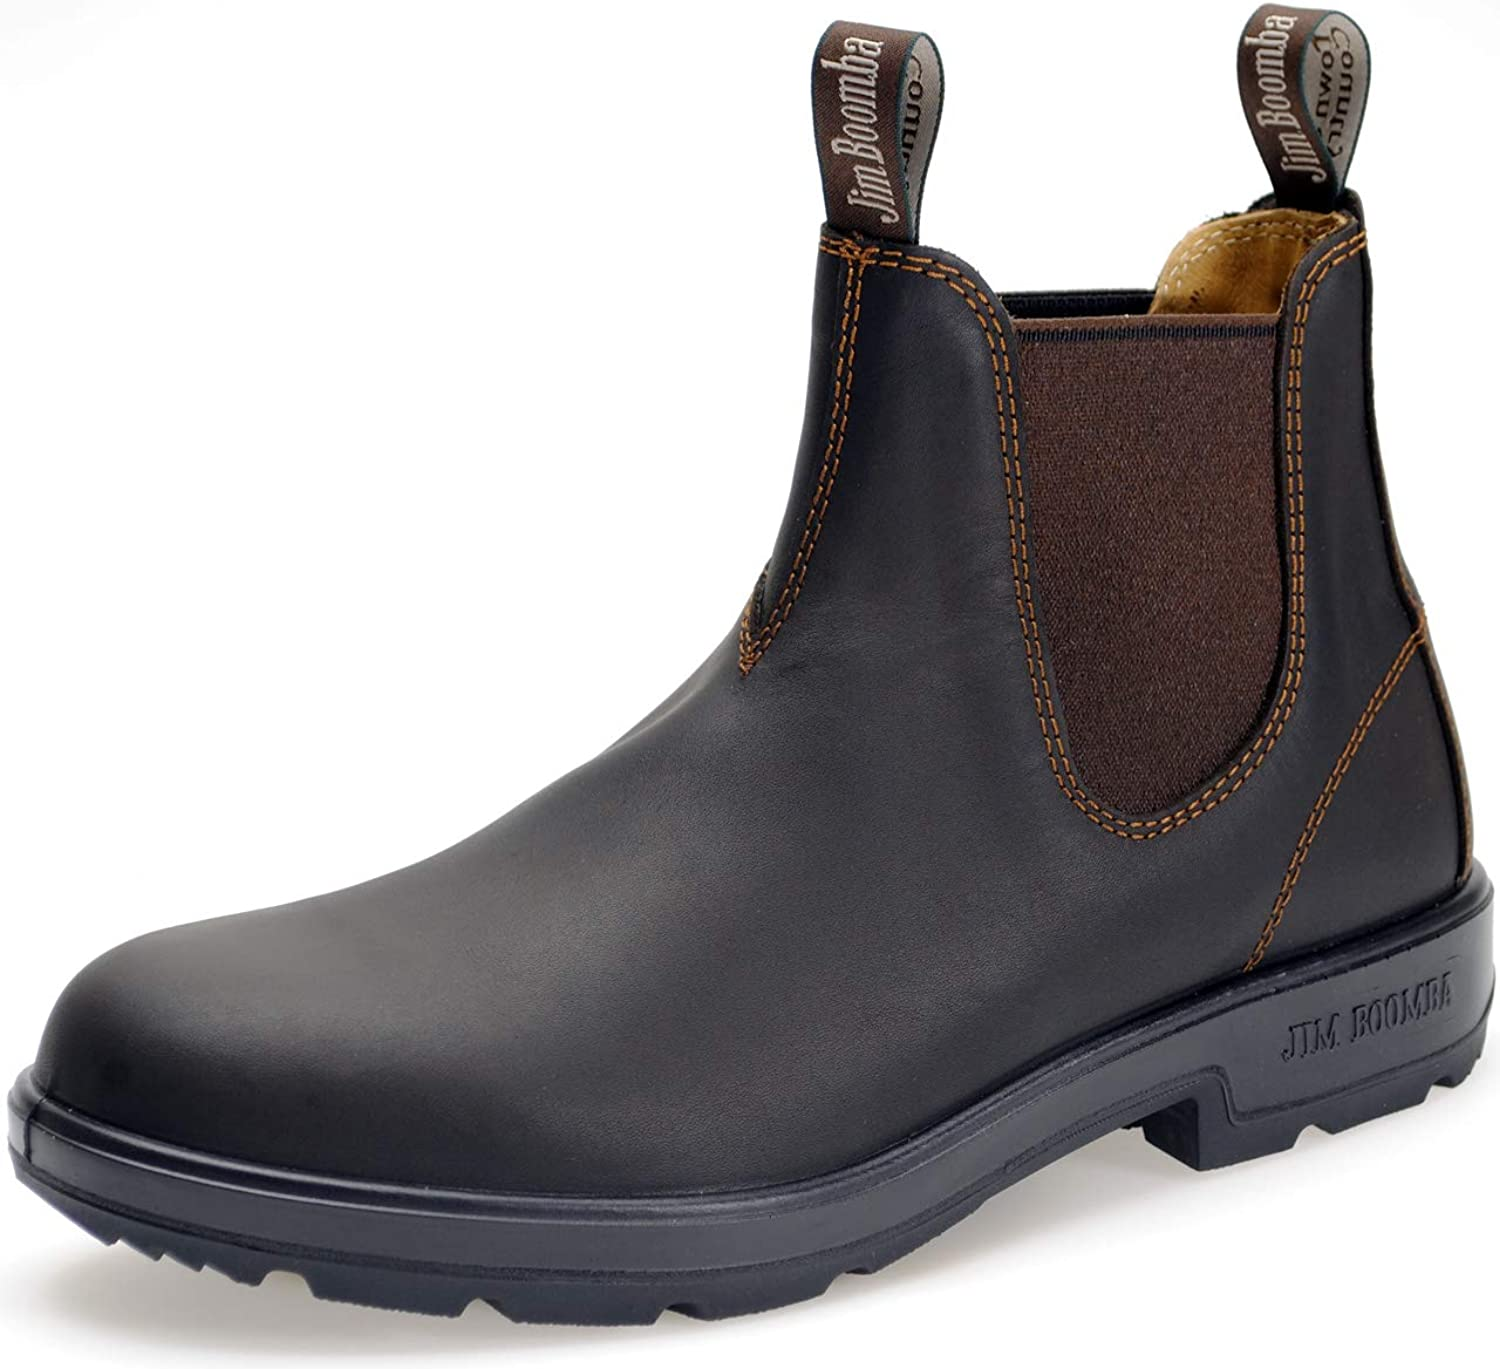 Jim Boomba Country Slip On Chelsea Boots - Australian Style - Unisex Boots